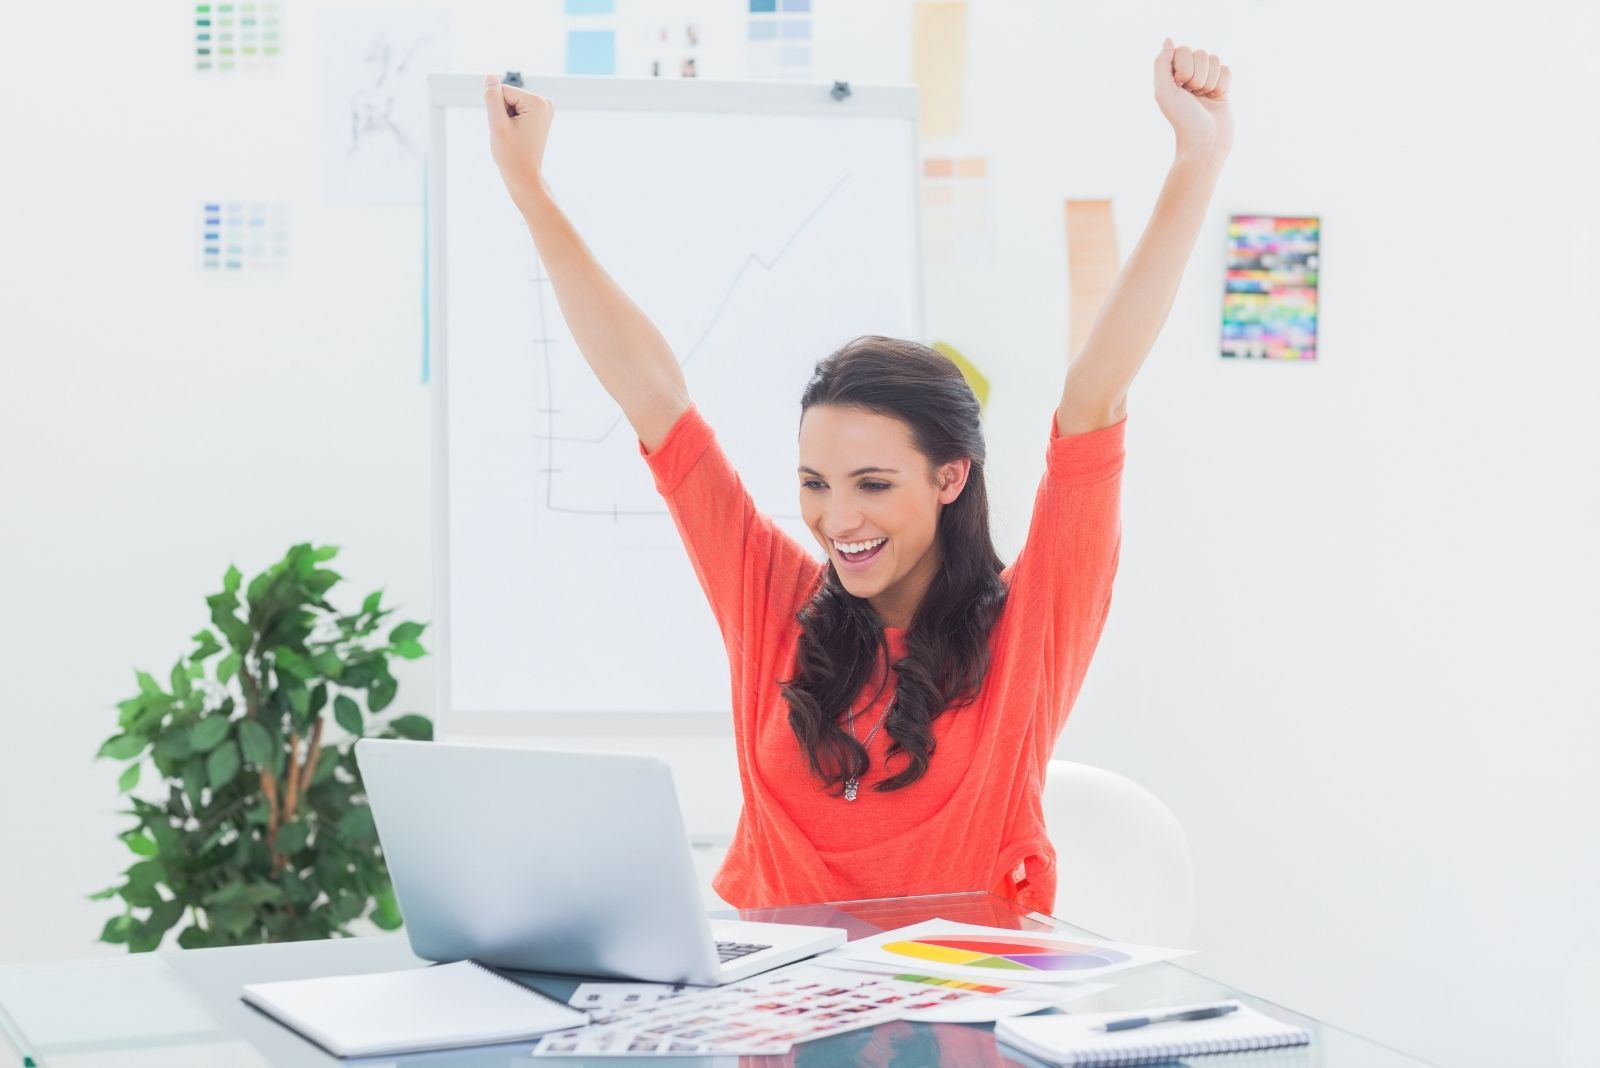 feeling accomplished woman raising her hands while looking at her laptop in her office table